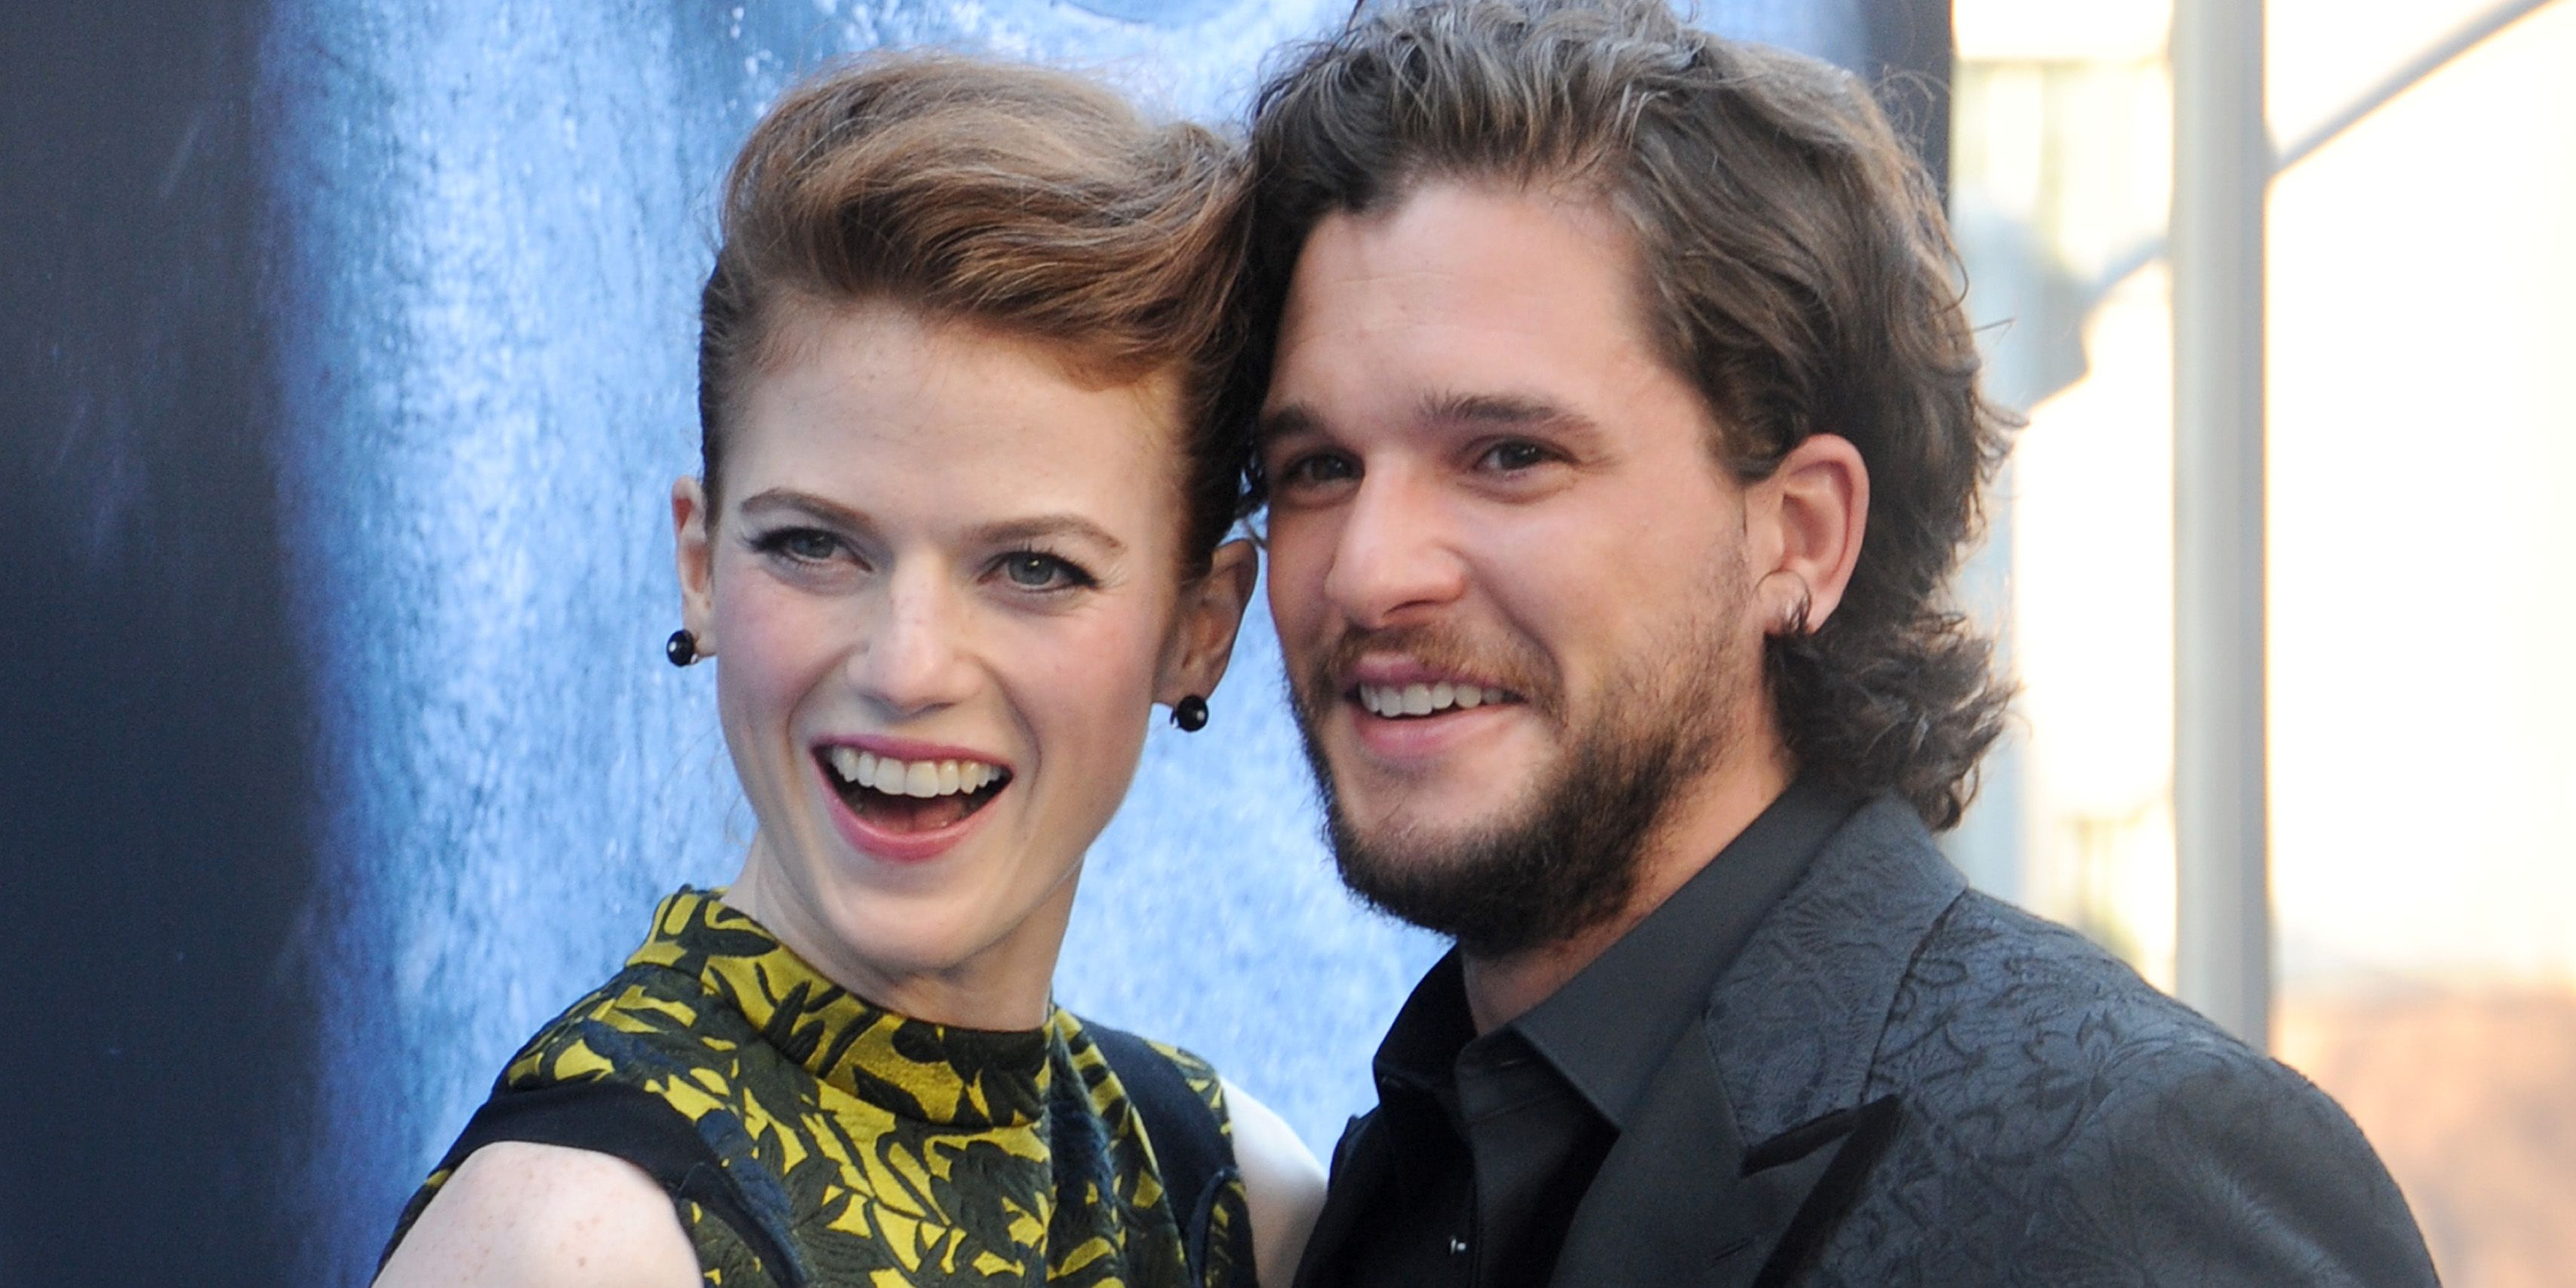 Jon Snow Game Of Thrones Wedding Invitations Rose Leslie Engaged